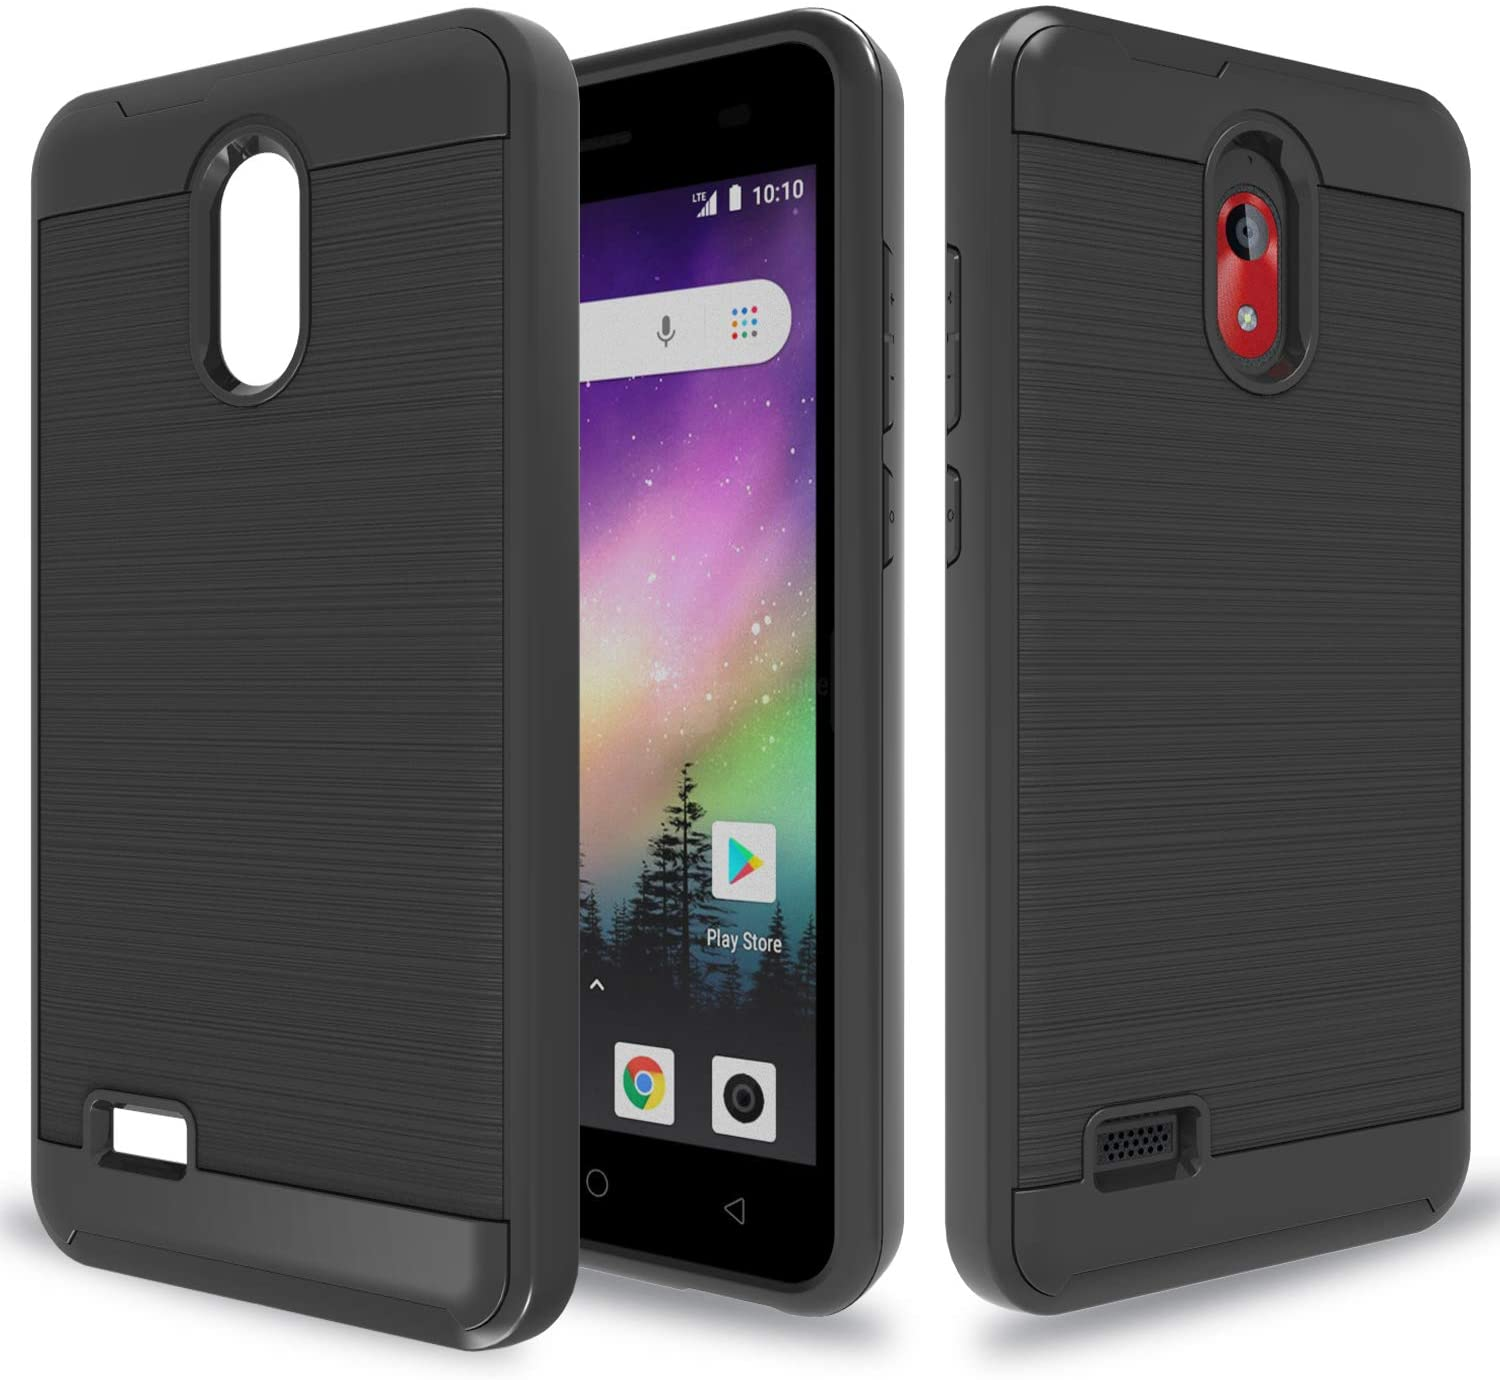 Wtiaw:Coolpad Illumina Case,Coolpad 3310A Case,Coolpad Legacy go Case,Coolpad Illumina (2018) Phone/Legacy go/Coolpad 3310A Phone Cases,Hybrid Dual Layer Defender Case for Legacy go-CL Black